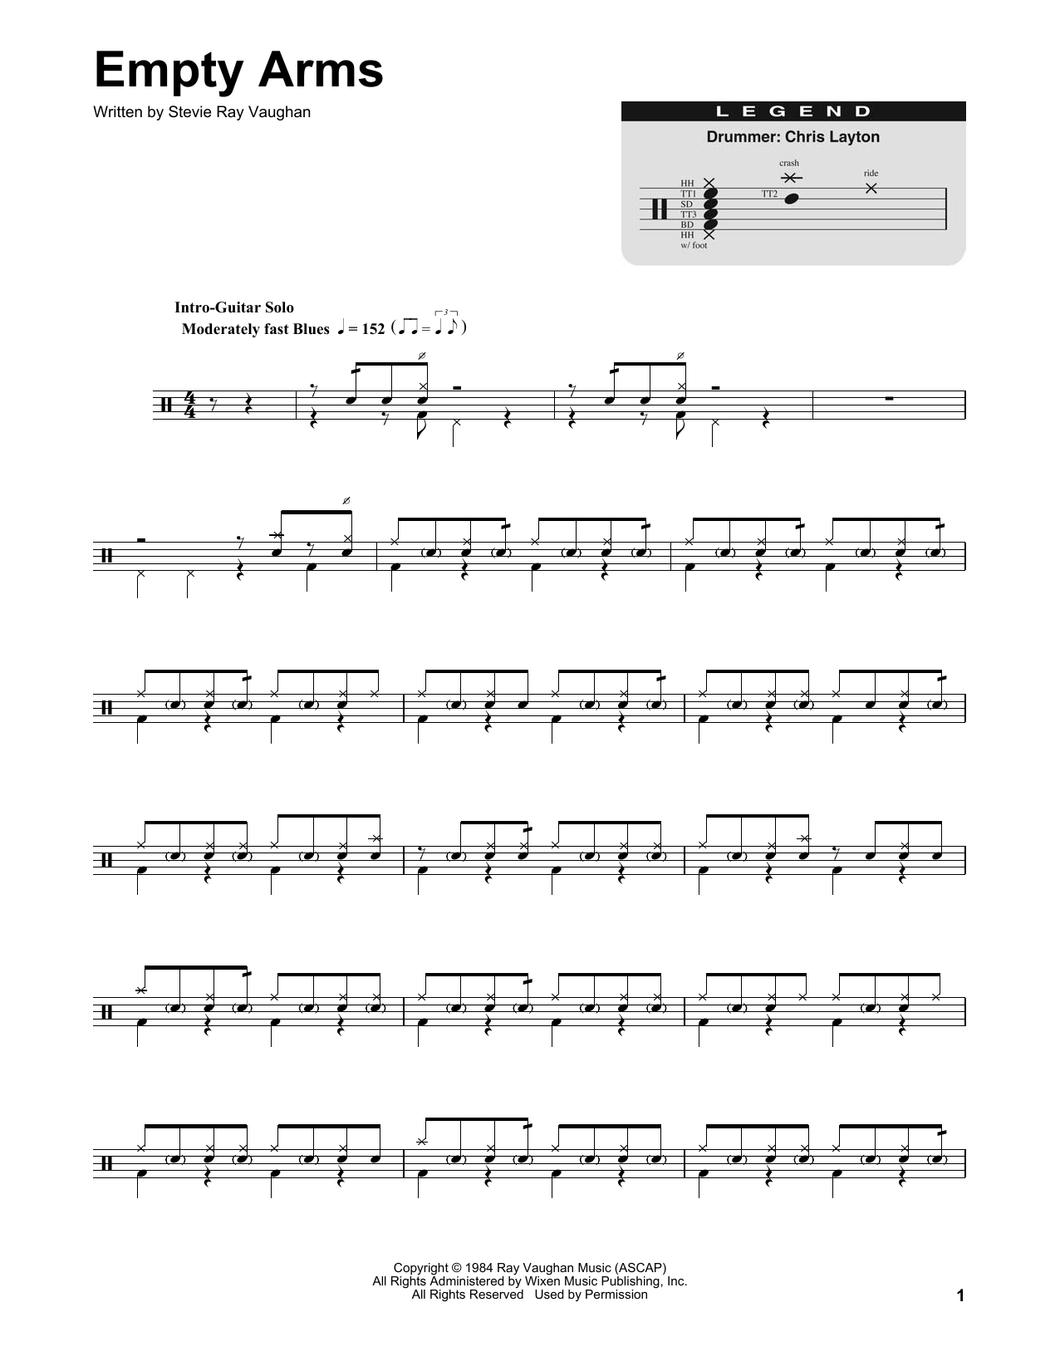 Empty Arms - Stevie Ray Vaughan - Full Drum Transcription / Drum Sheet Music - SheetMusicDirect DT